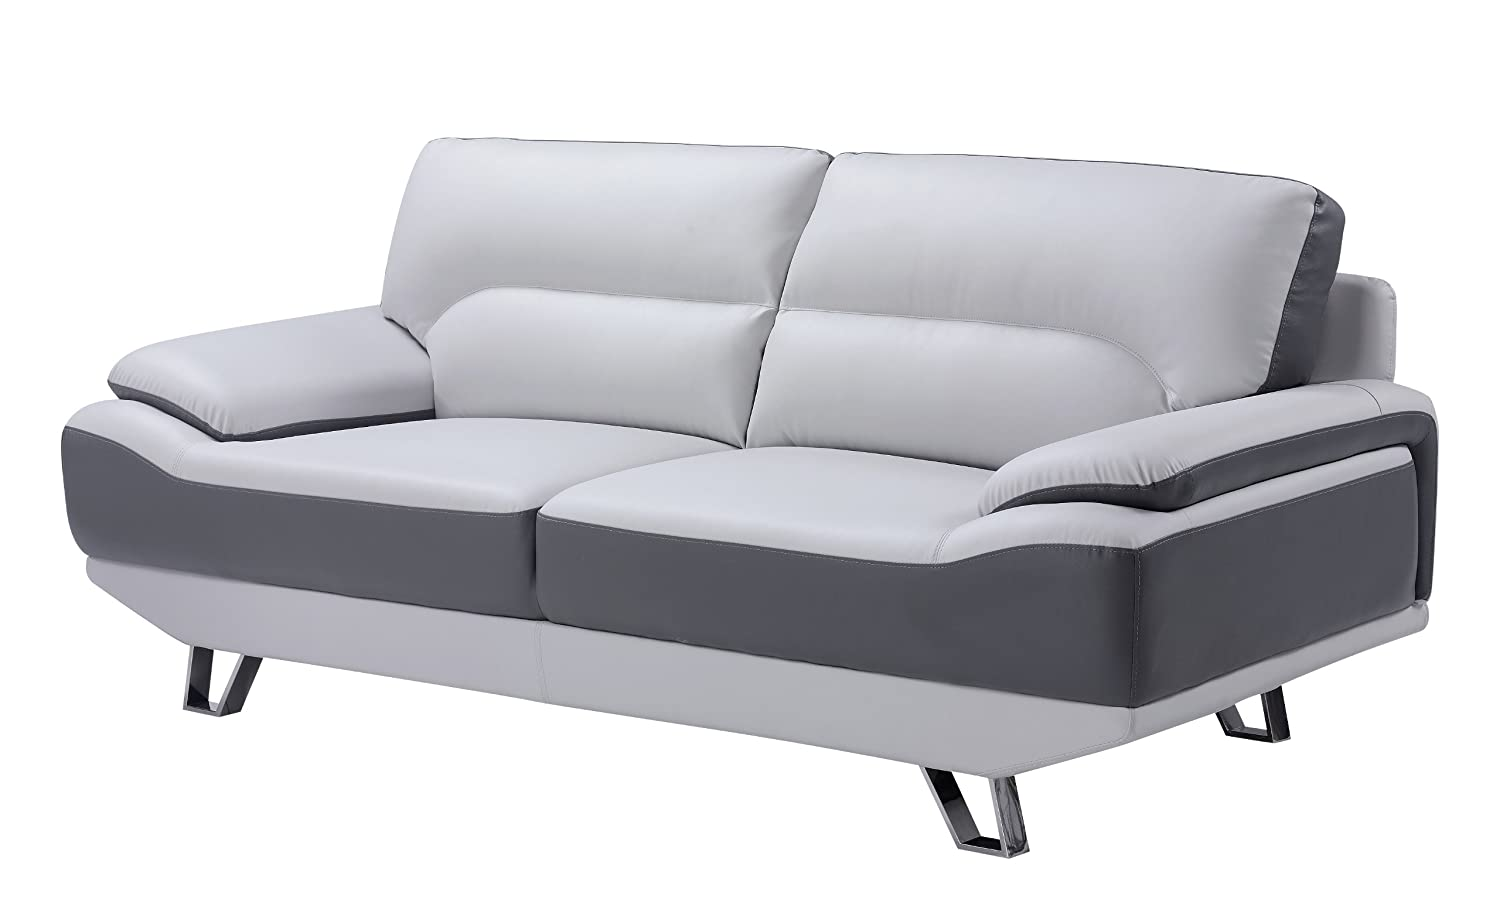 Global Furniture Natalie Sofa - Light Grey and Dark Grey